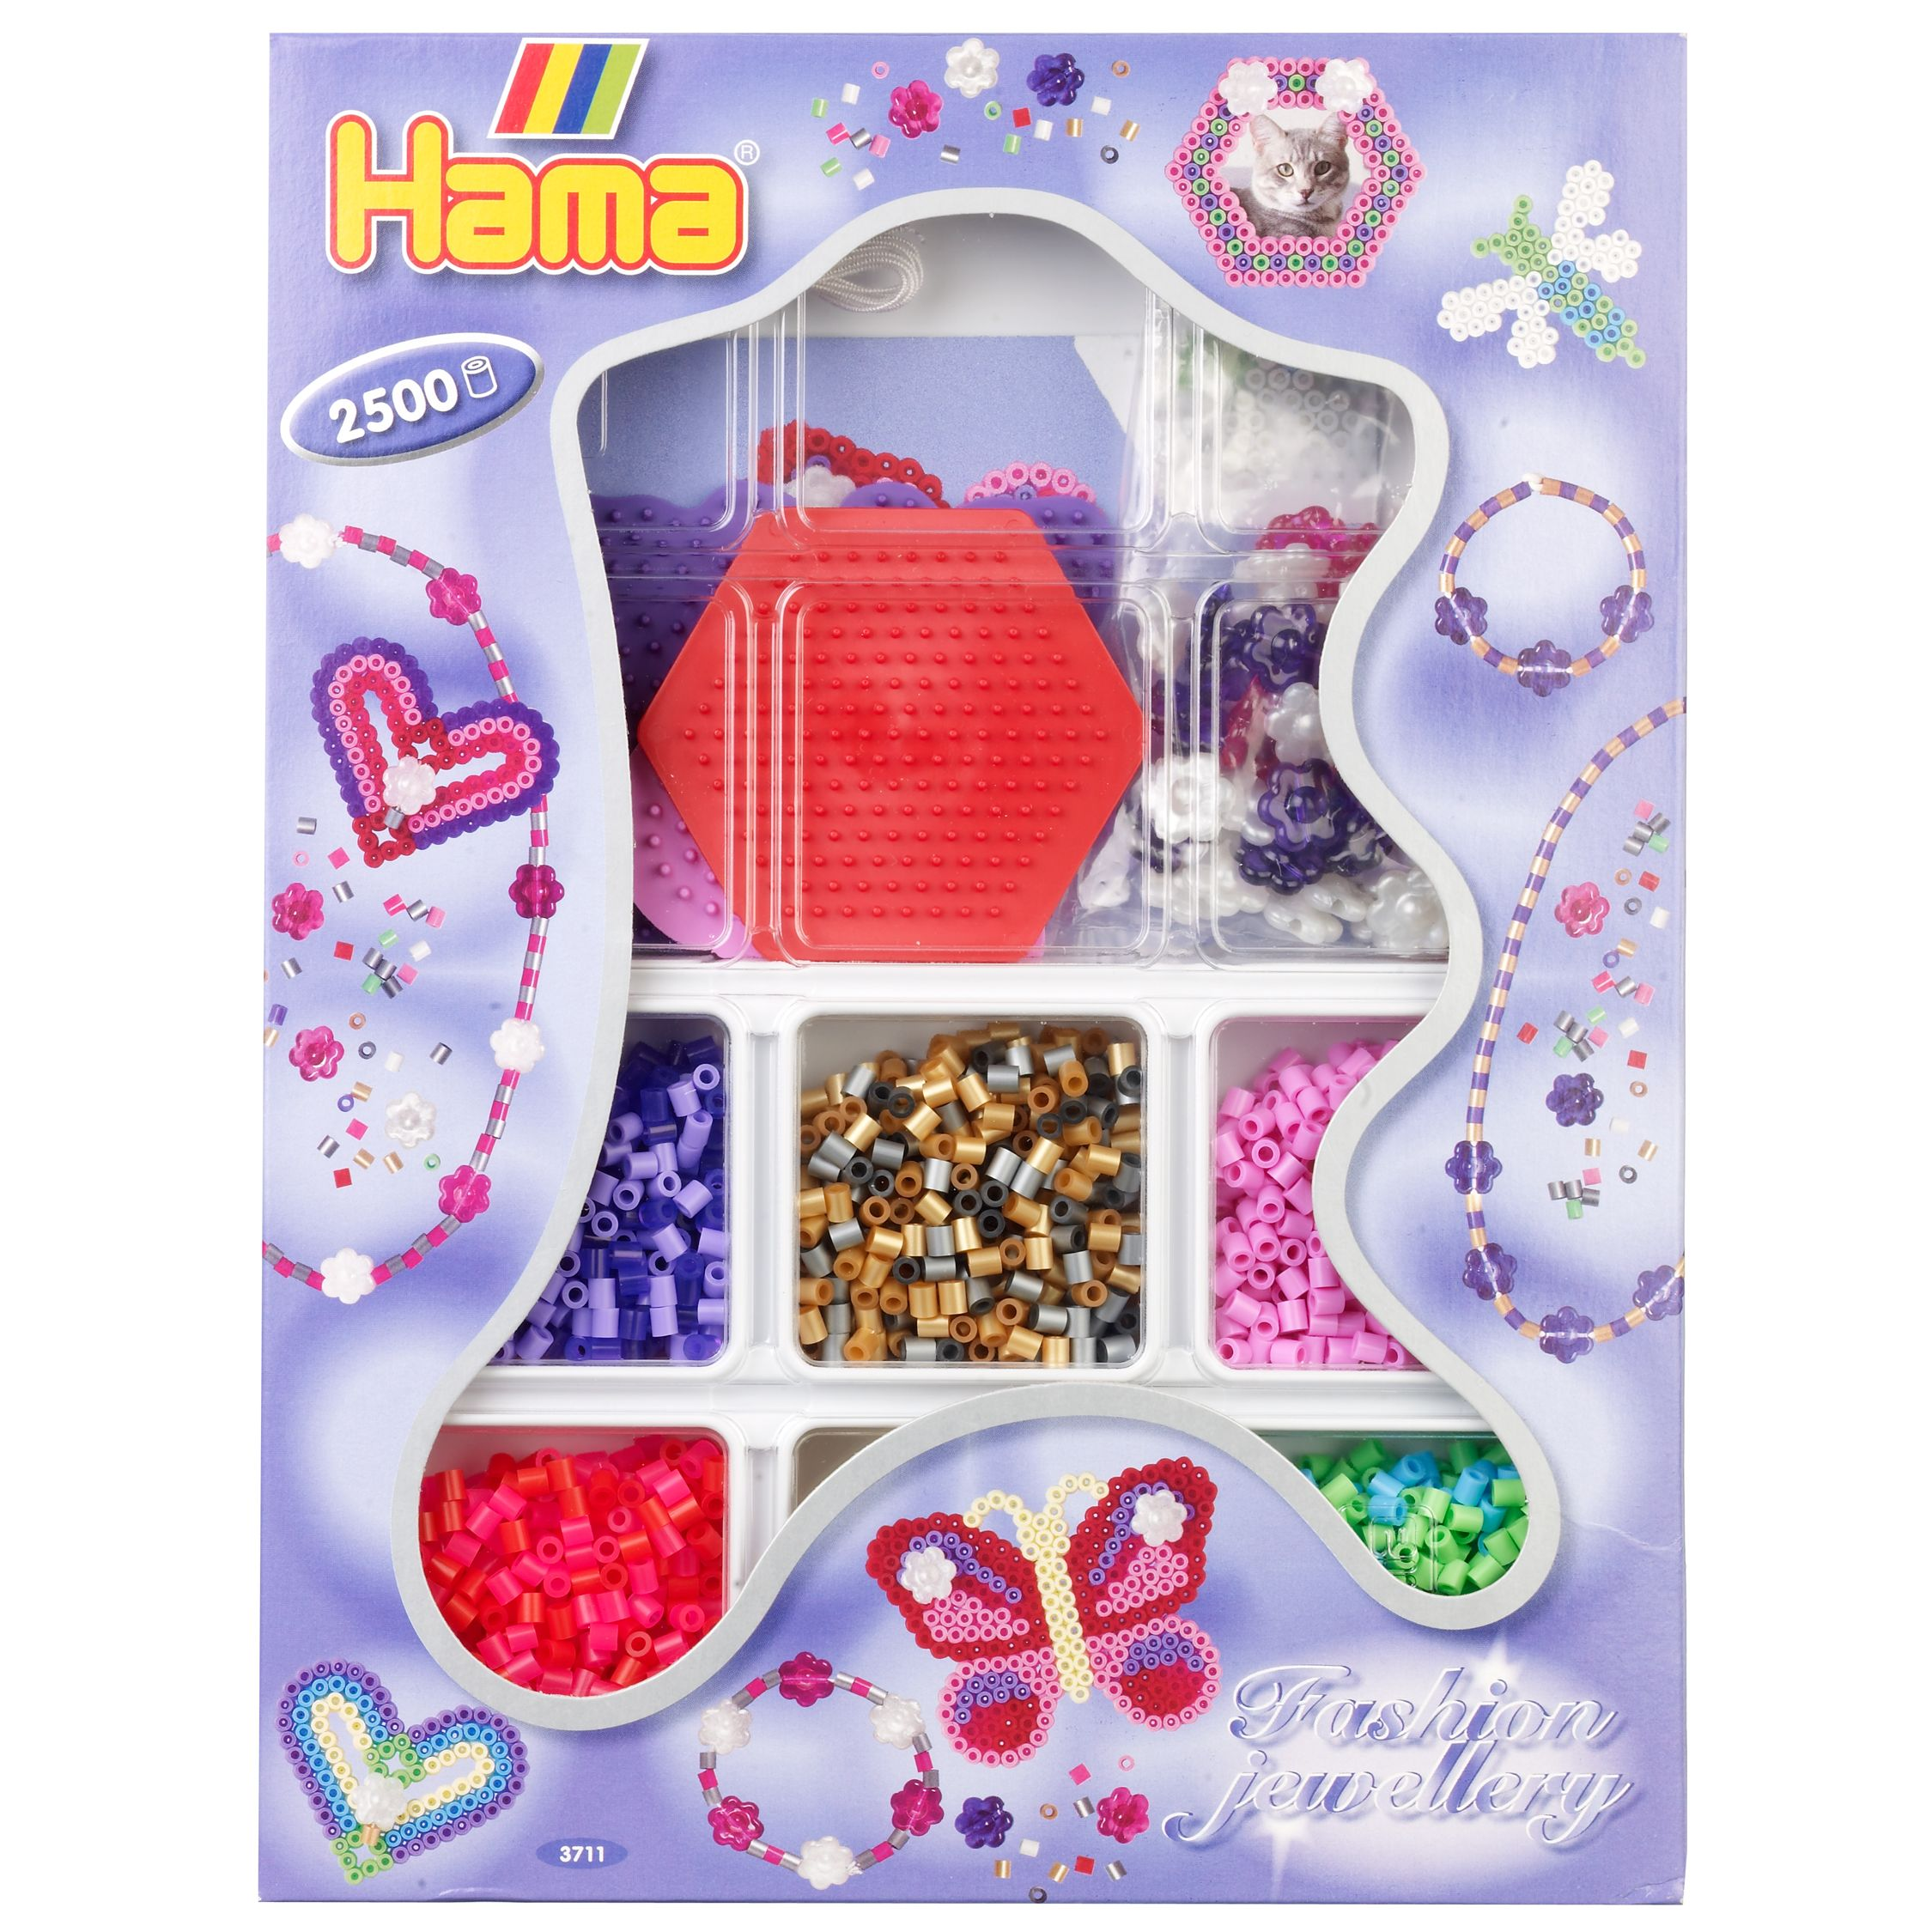 Hama Fashion Jewellery 2500 Bead Kit